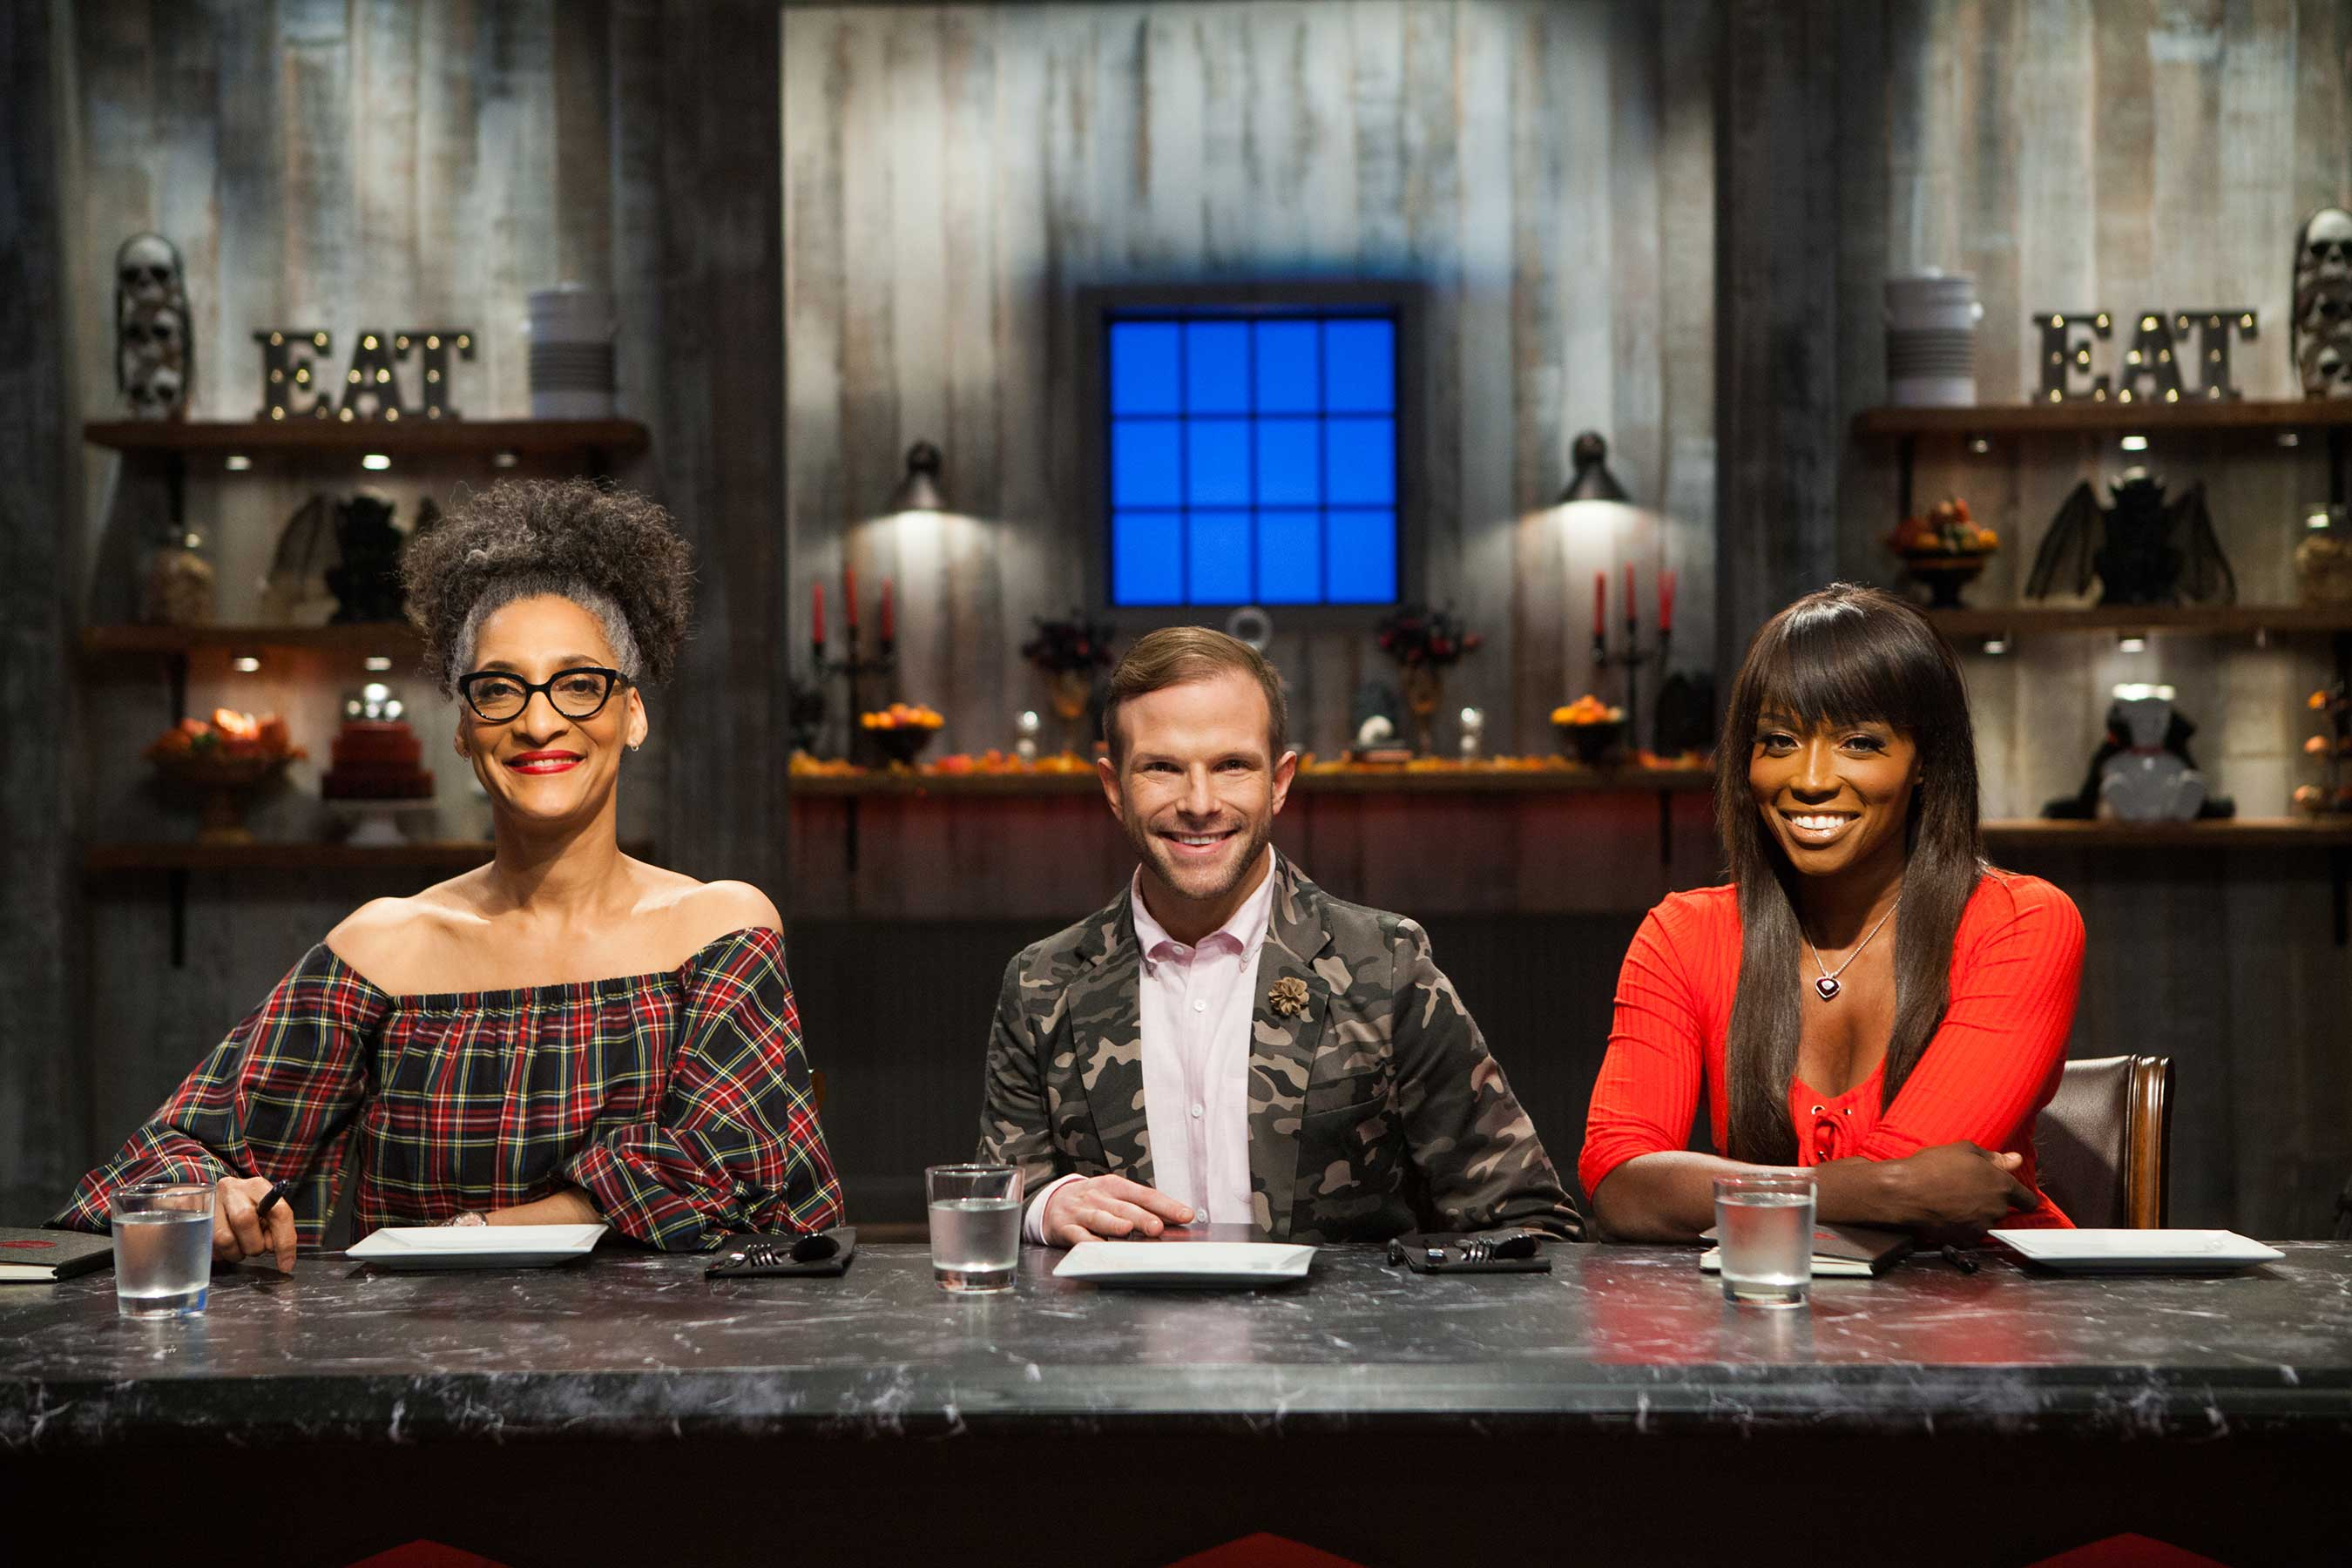 Has Halloween become the Food Network's biggest baking holiday?